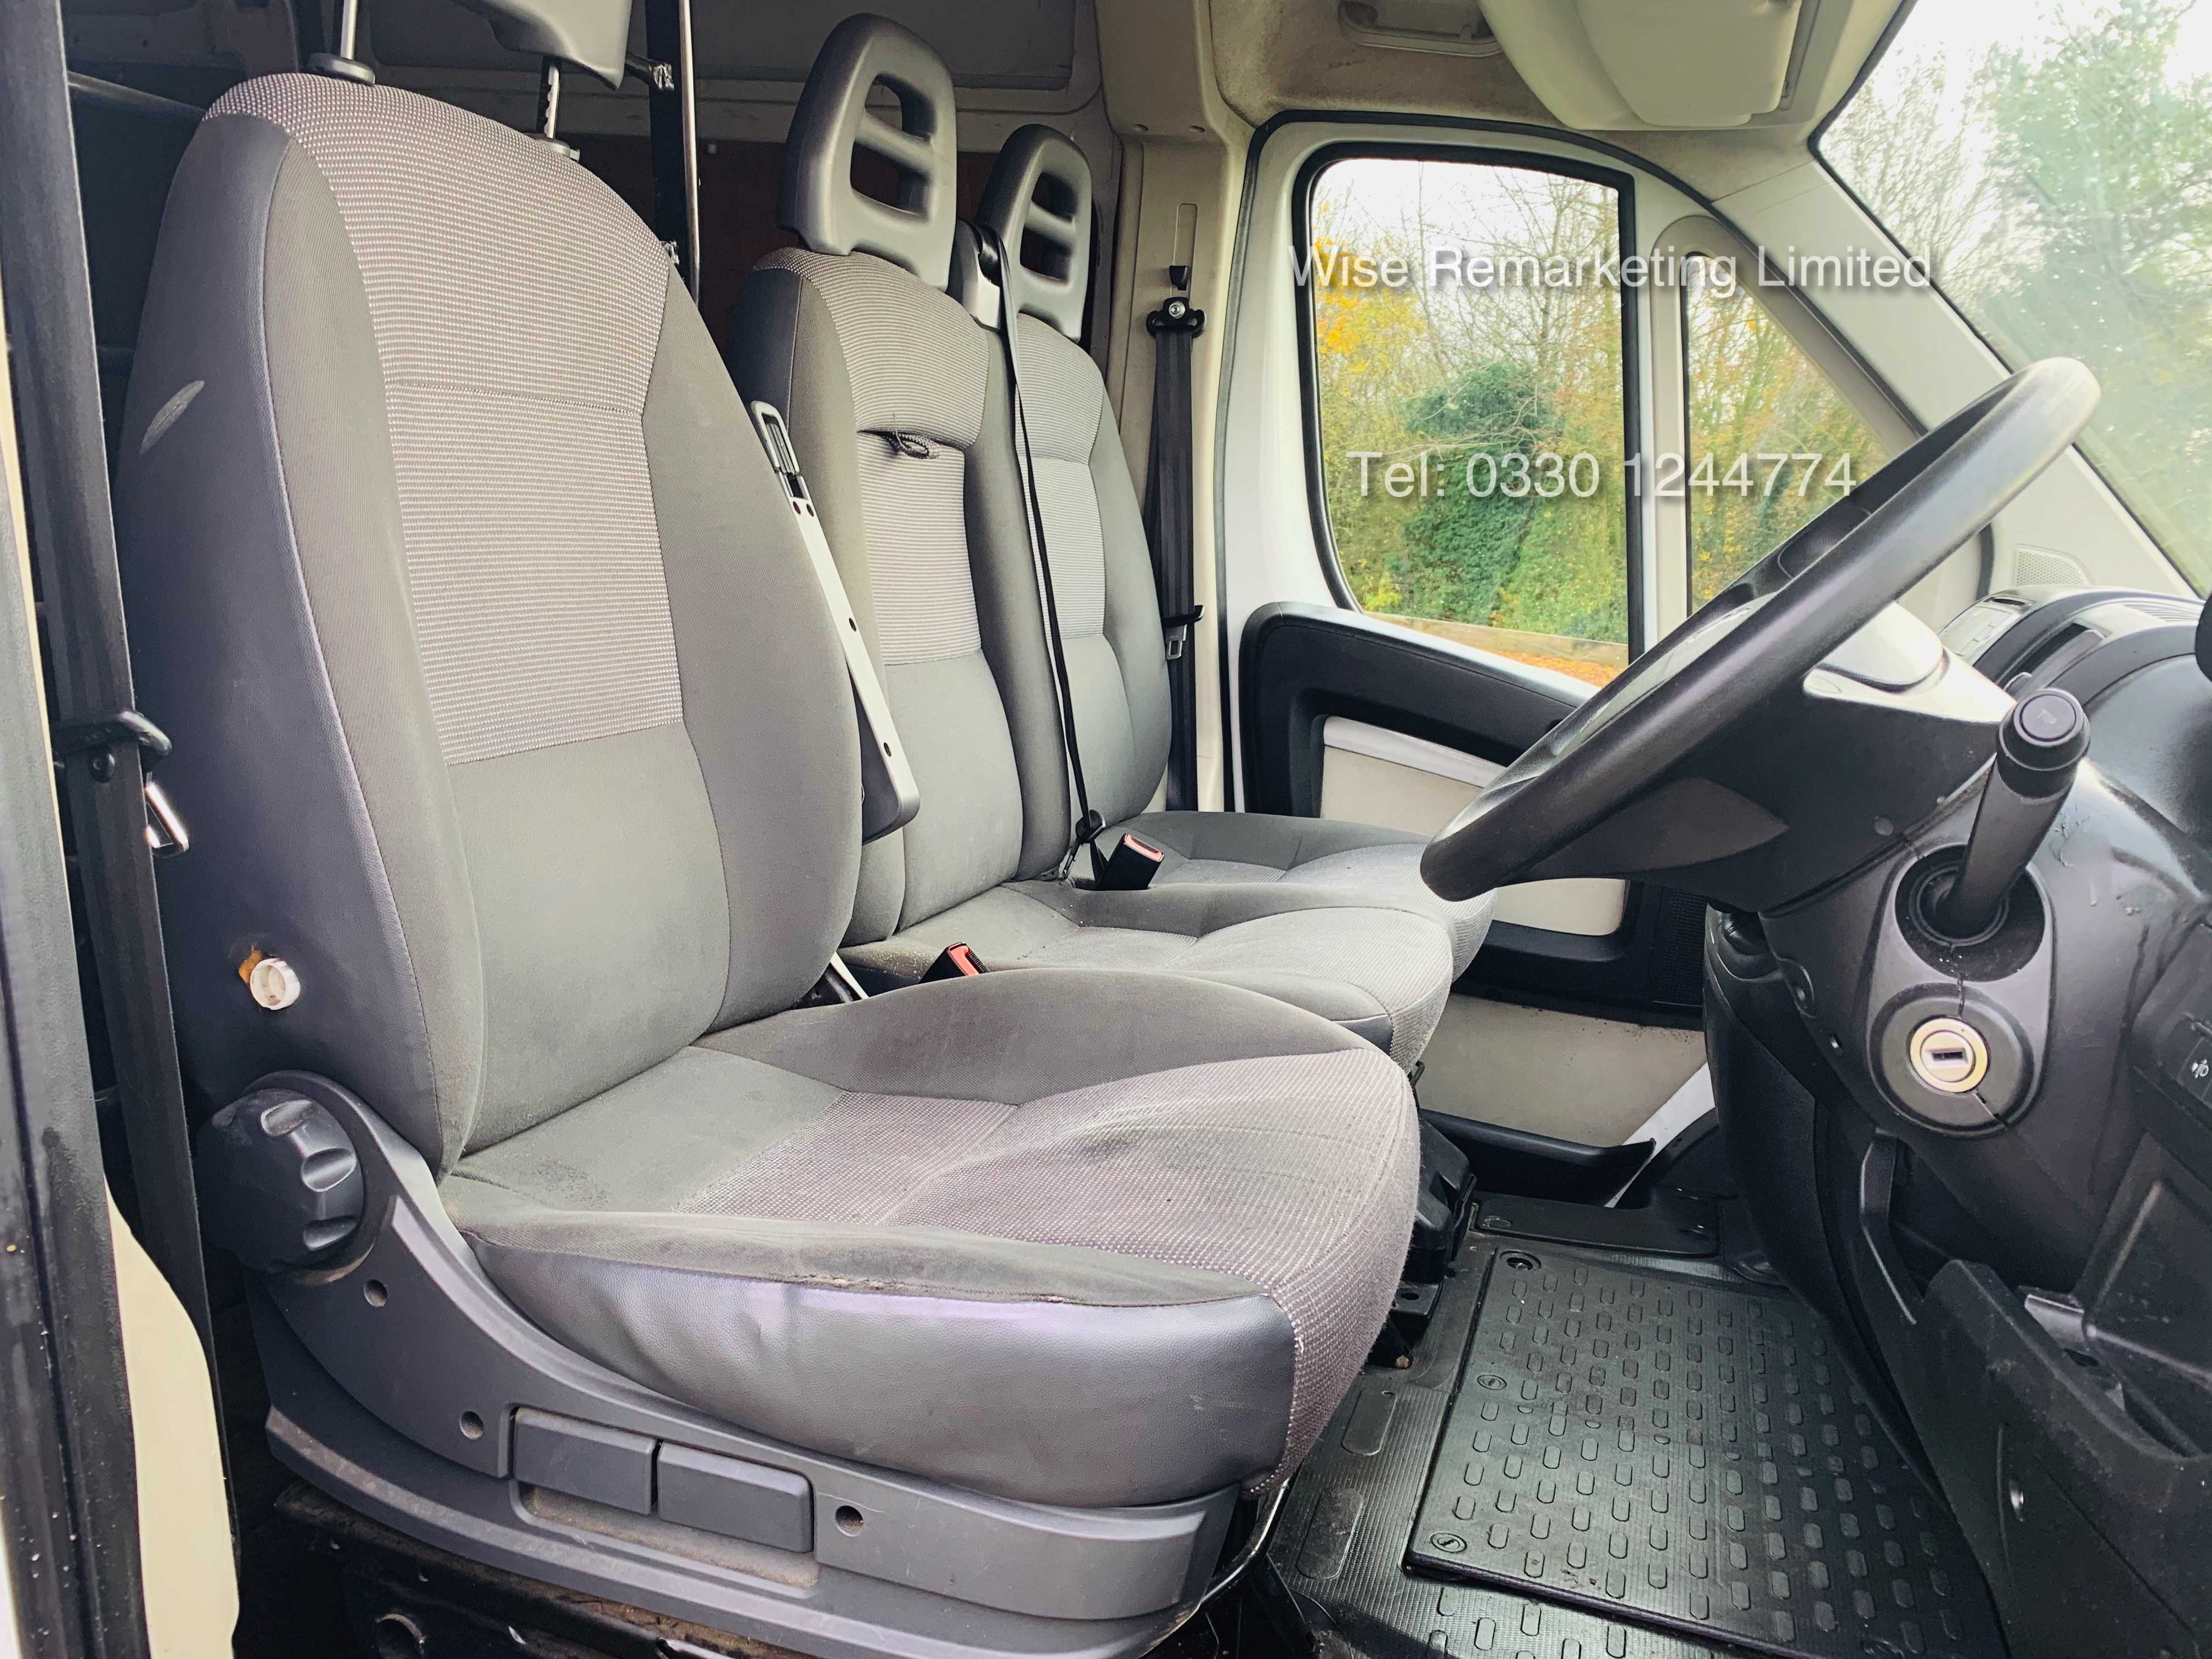 Peugeot Boxer 335 2.2 HDi Long Wheel Base( L3H2) 2014 Model - 1 Keeper From New - Image 11 of 17